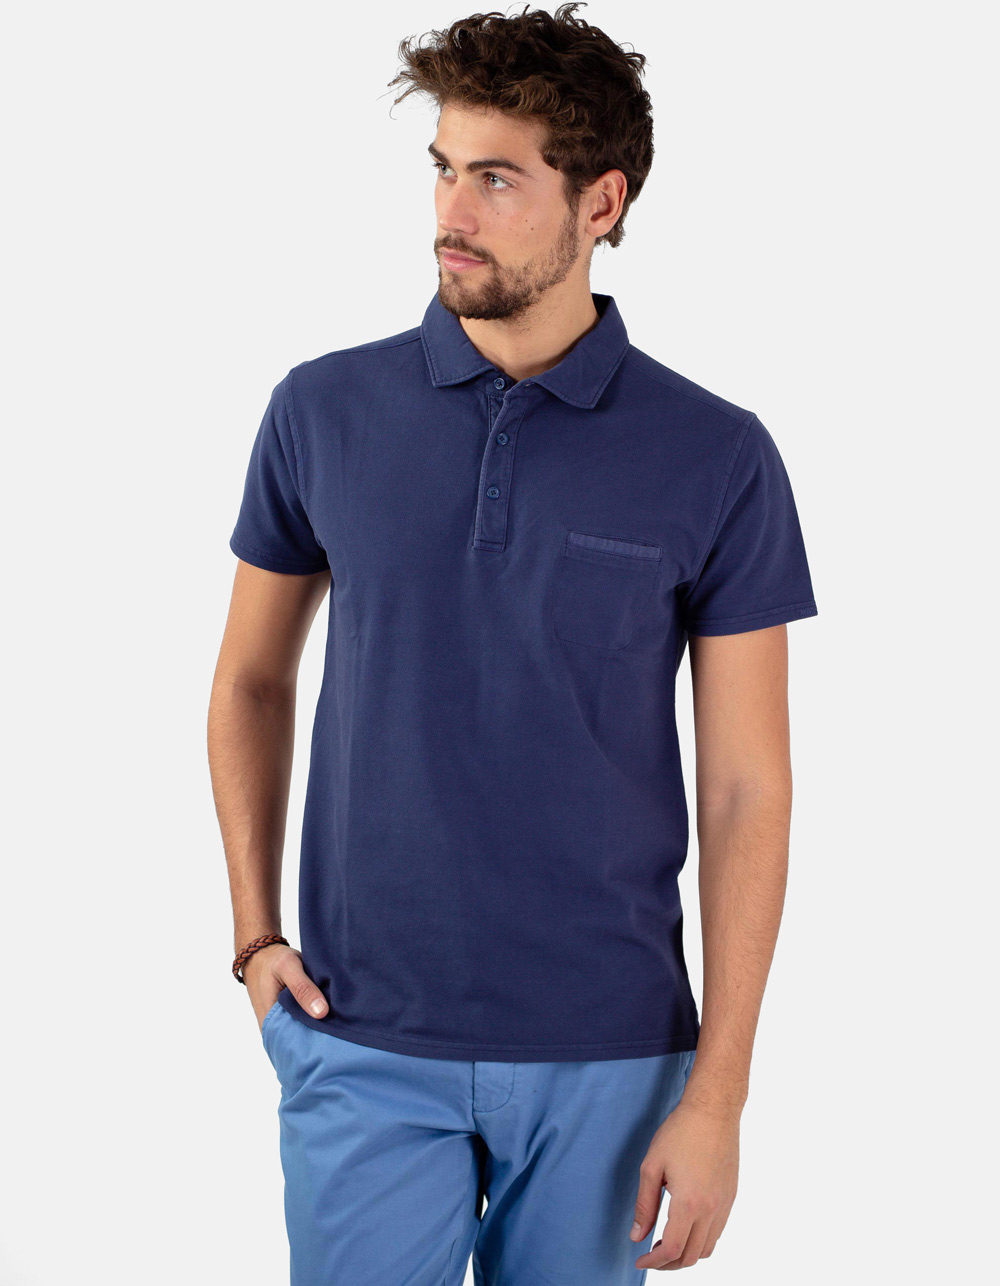 Navy pocket piqué polo